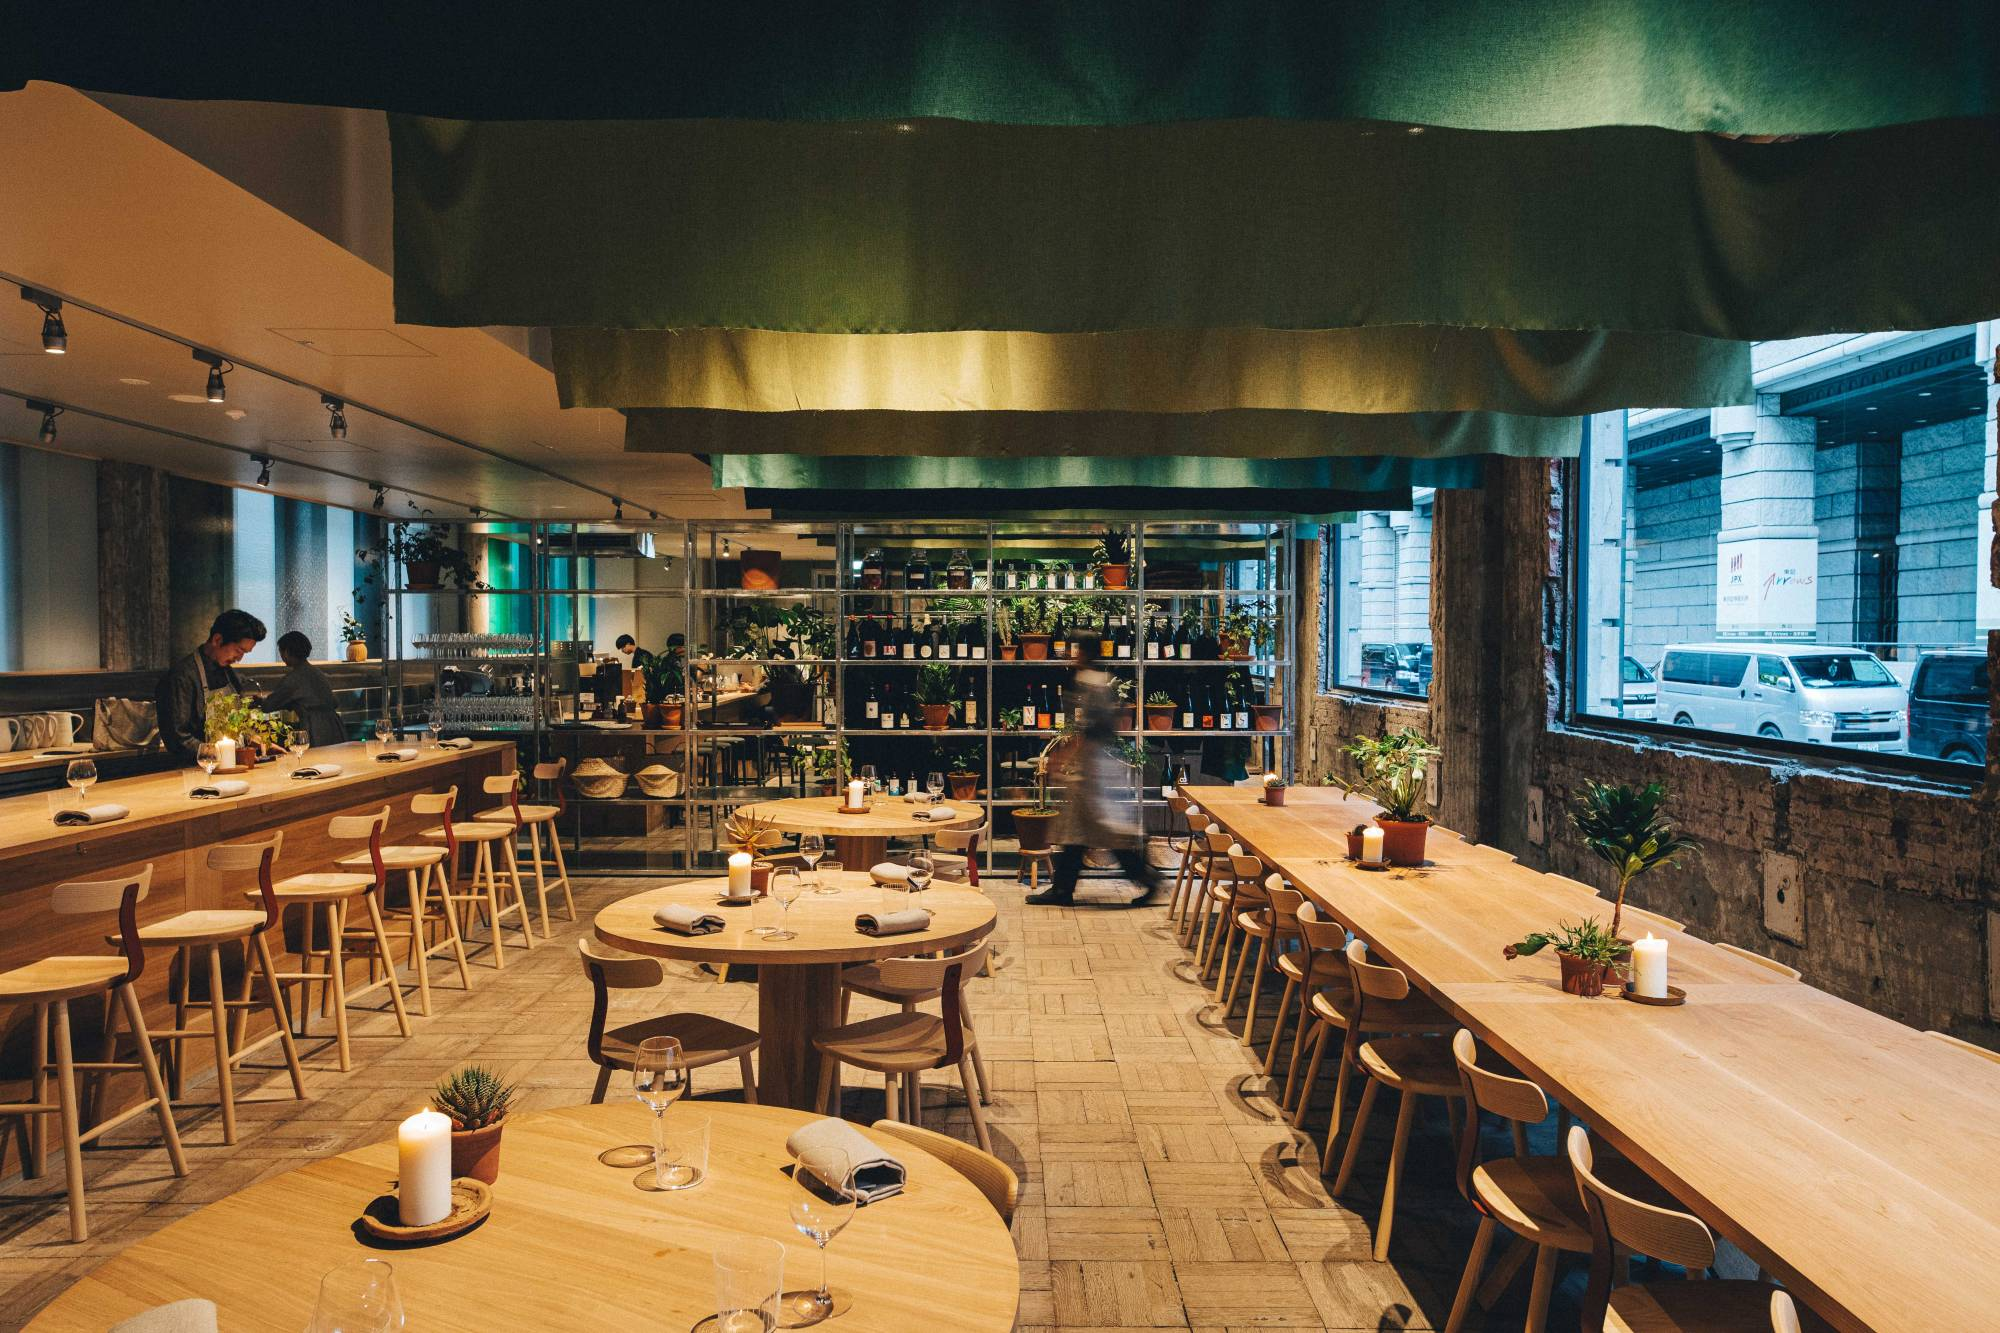 Collaboration: Caveman staff worked with design firm Claesson Koivisto Rune to design the interior of the restaurant. | ©︎ K5